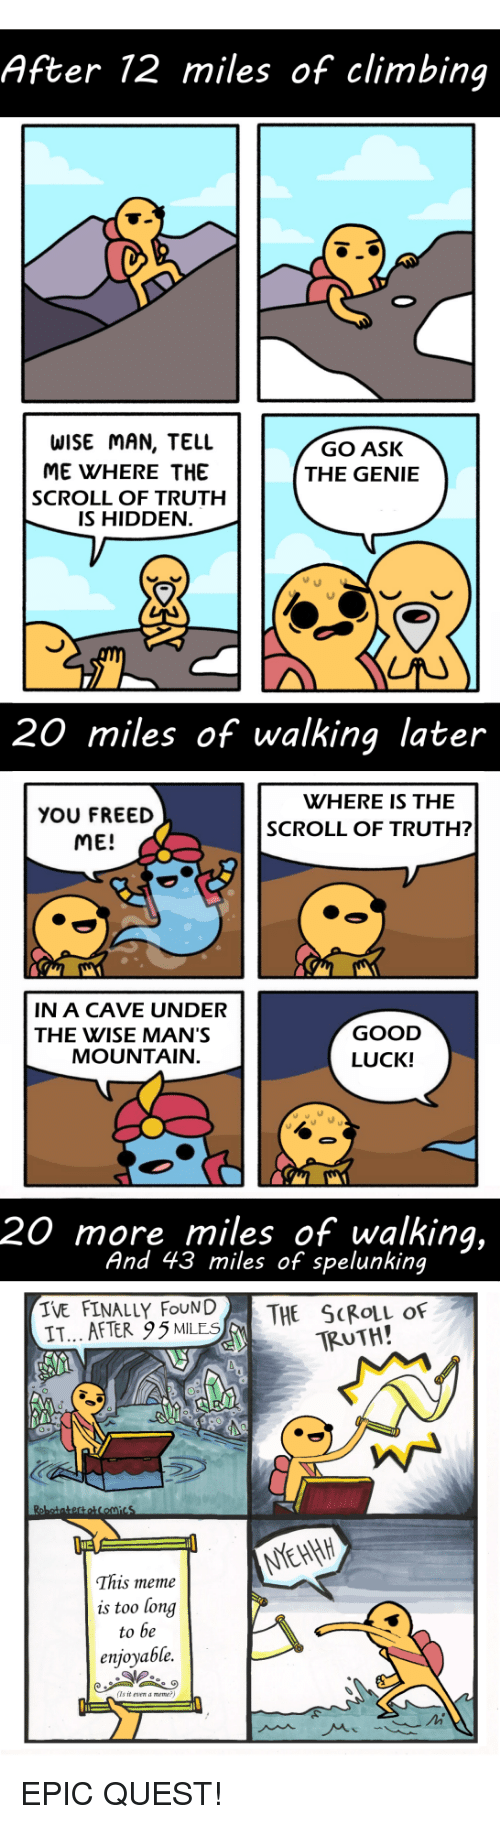 Climbing, Meme, and Good: After 12 miles of climbing  WISE MAN, TELL  ME WHERE THE  SCROLL OF TRUTH  IS HIDDEN  GO ASK  THE GENIE  20 miles of walking later  WHERE IS THE  YOU FREED  ME!  SCROLL OF TRUTH?  IN A CAVE UNDER  THE WISE MAN'S  GOOD  LUCK!  MOUNTAIN  20 more miles of walking,  And 43 miles of spelunking  IVE FINALLY FOUN|  IT... AFTER 95MLES  THE SCROLL OF  TRUTH!  This meme  is too long  to be  enjoyable.  (Ts it vn a meme EPIC QUEST!